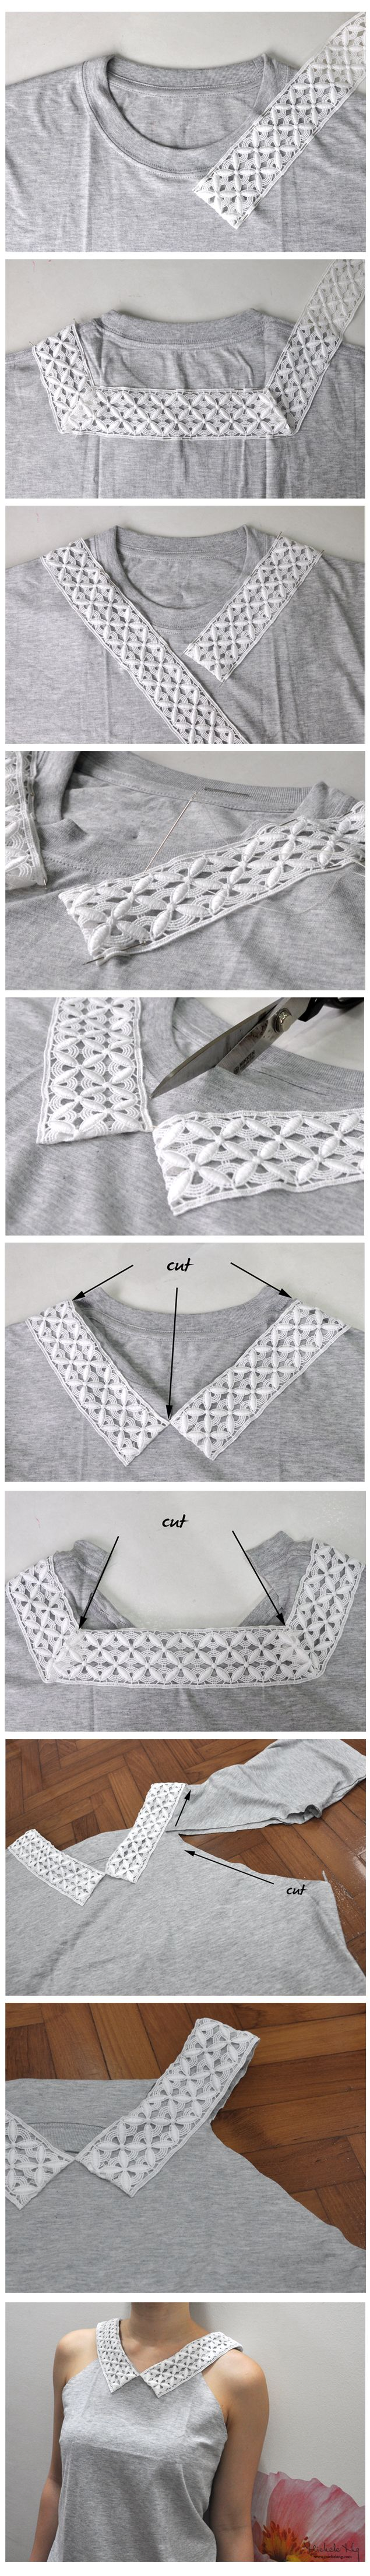 Upcycle a plain old tee-shirt with lace